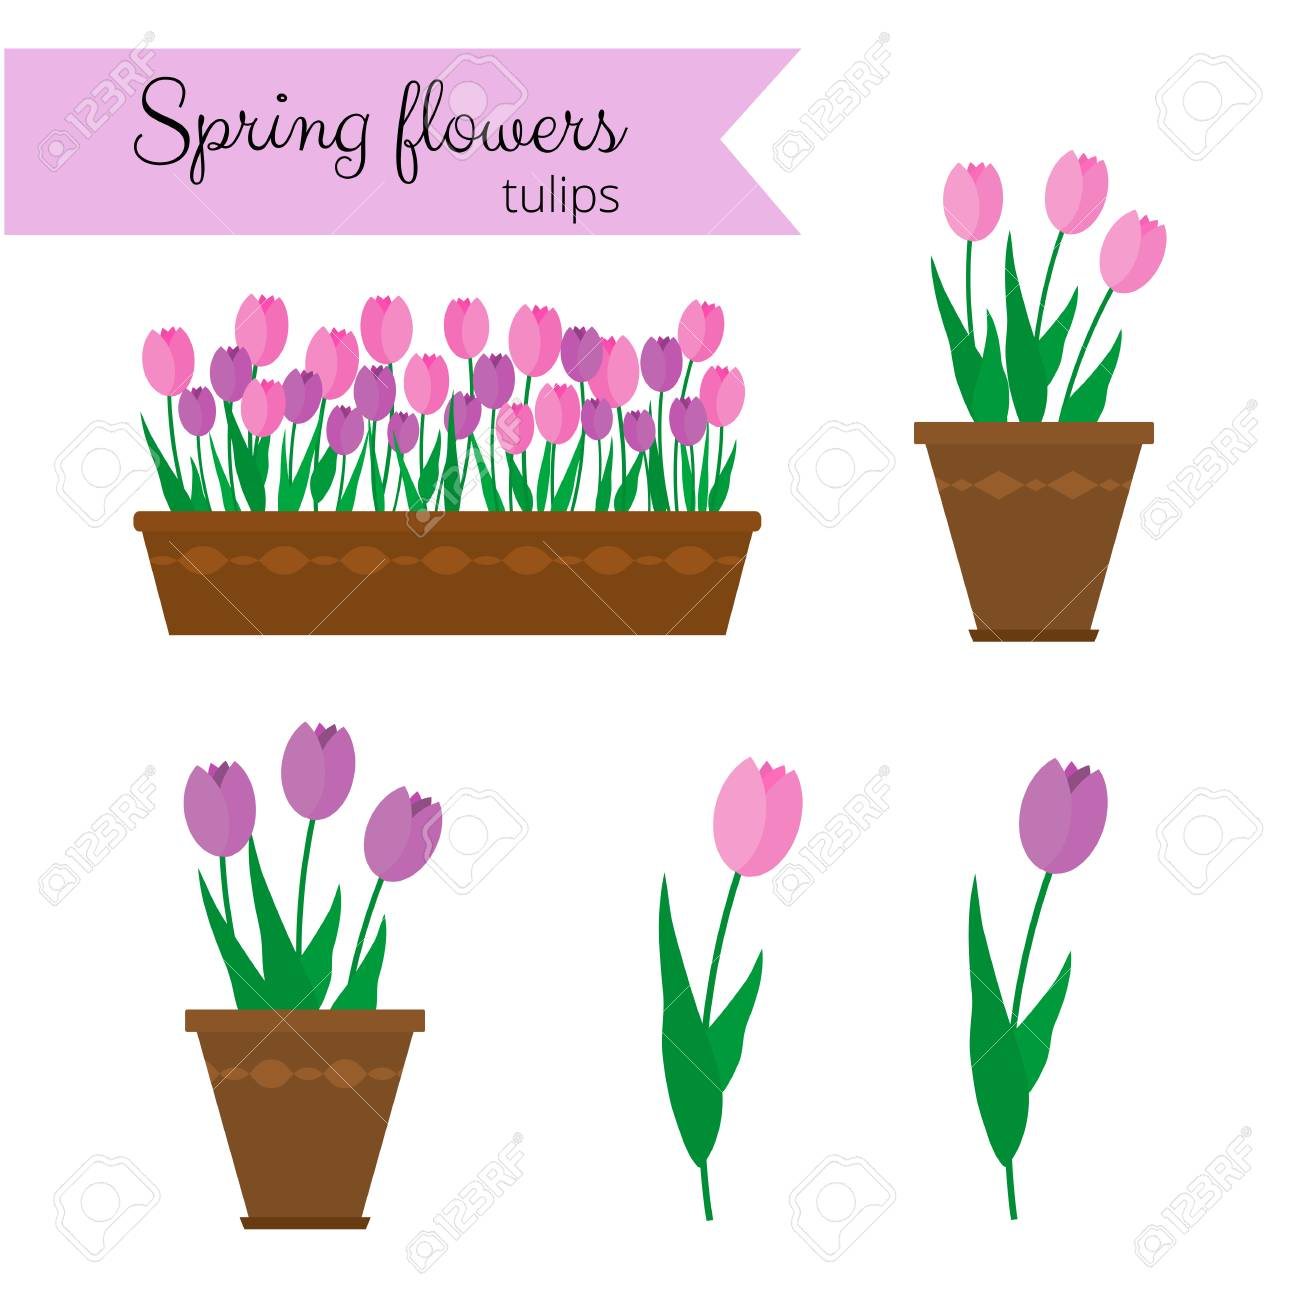 Spring flowers in long container and pots tulips isolated on spring flowers in long container and pots tulips isolated on white background stock vector mightylinksfo